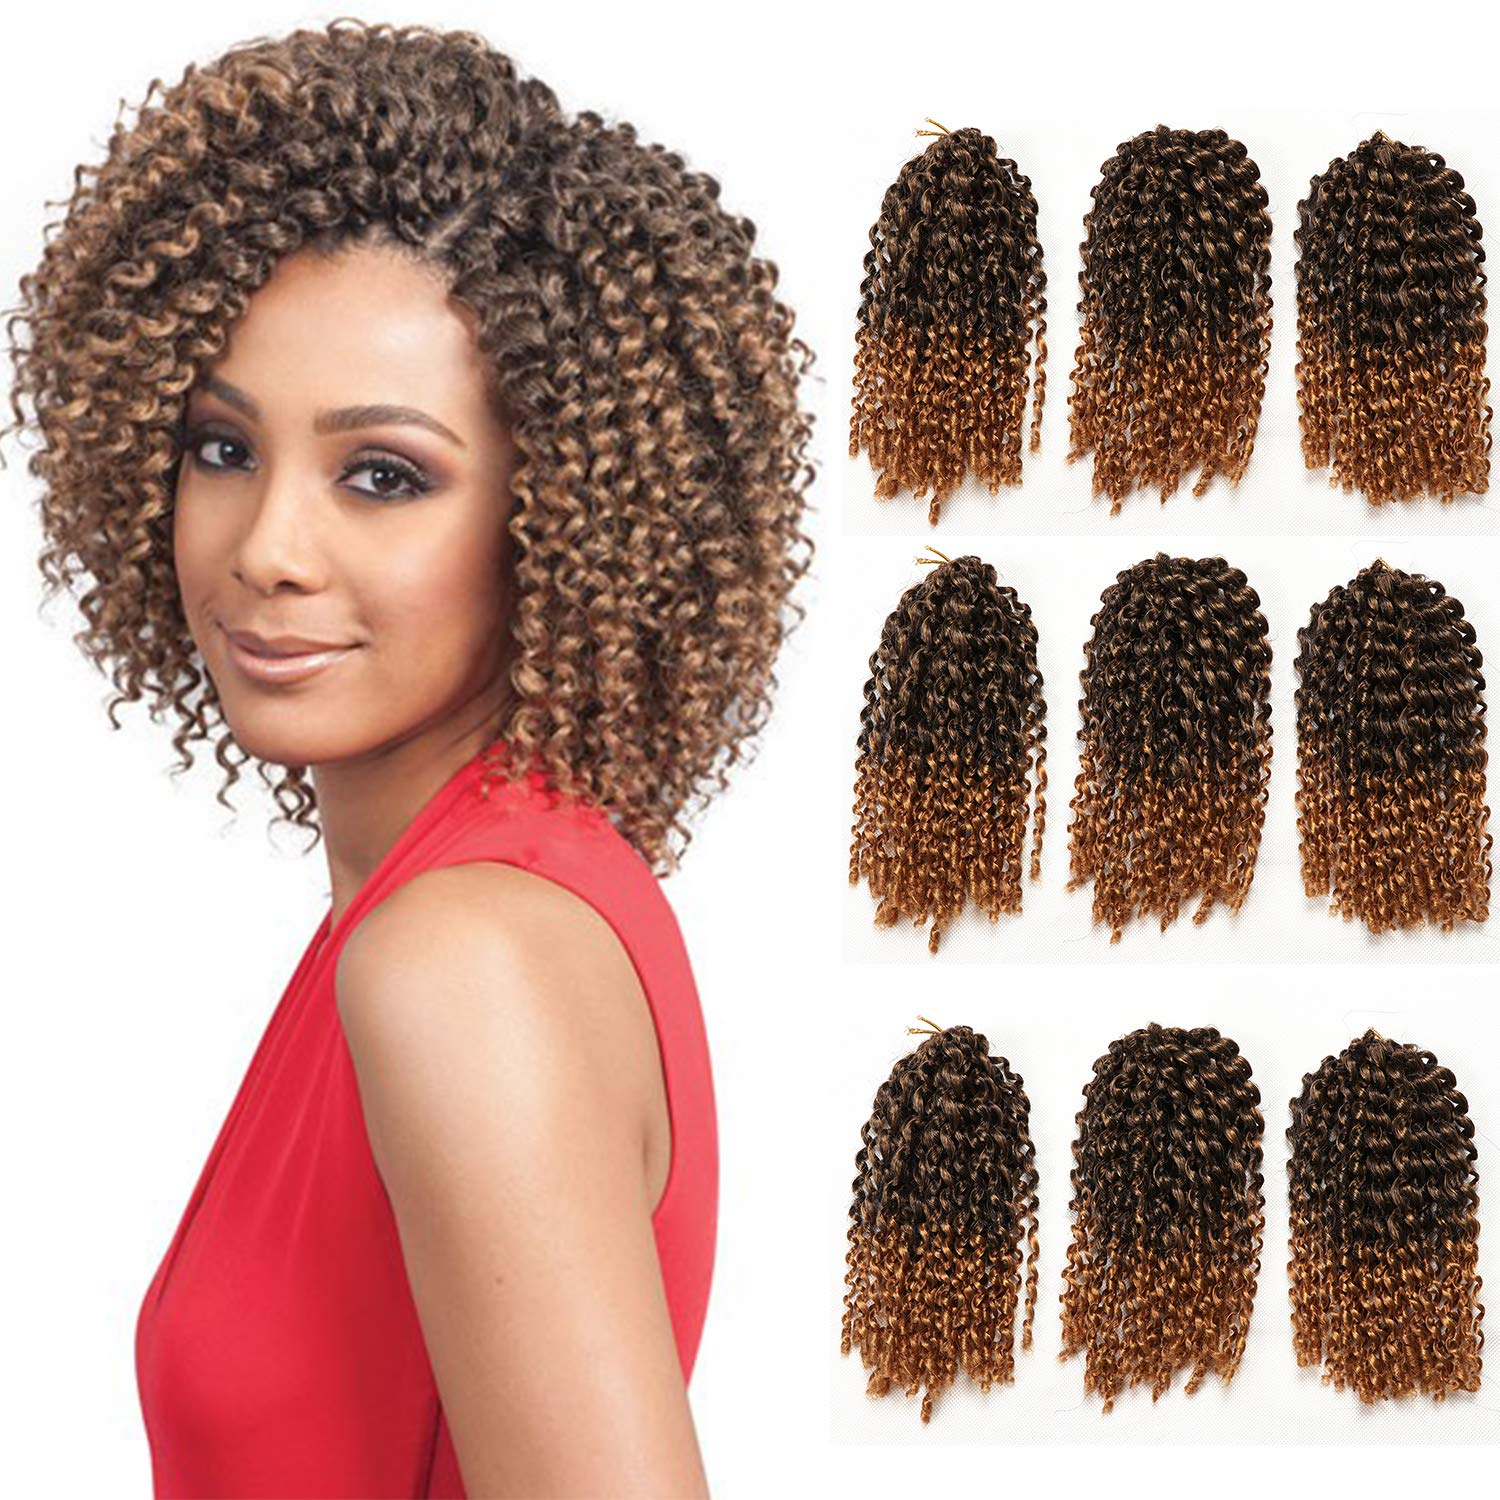 9 Bundles Lot Marlybob Crochet Hair Kinky Curly Twist Hair Extension 8 Inch Short Jerry Curly Crochet Braids Synthetic Braiding Hairpieces T27 Buy Online In India At Desertcart In Productid 149319293